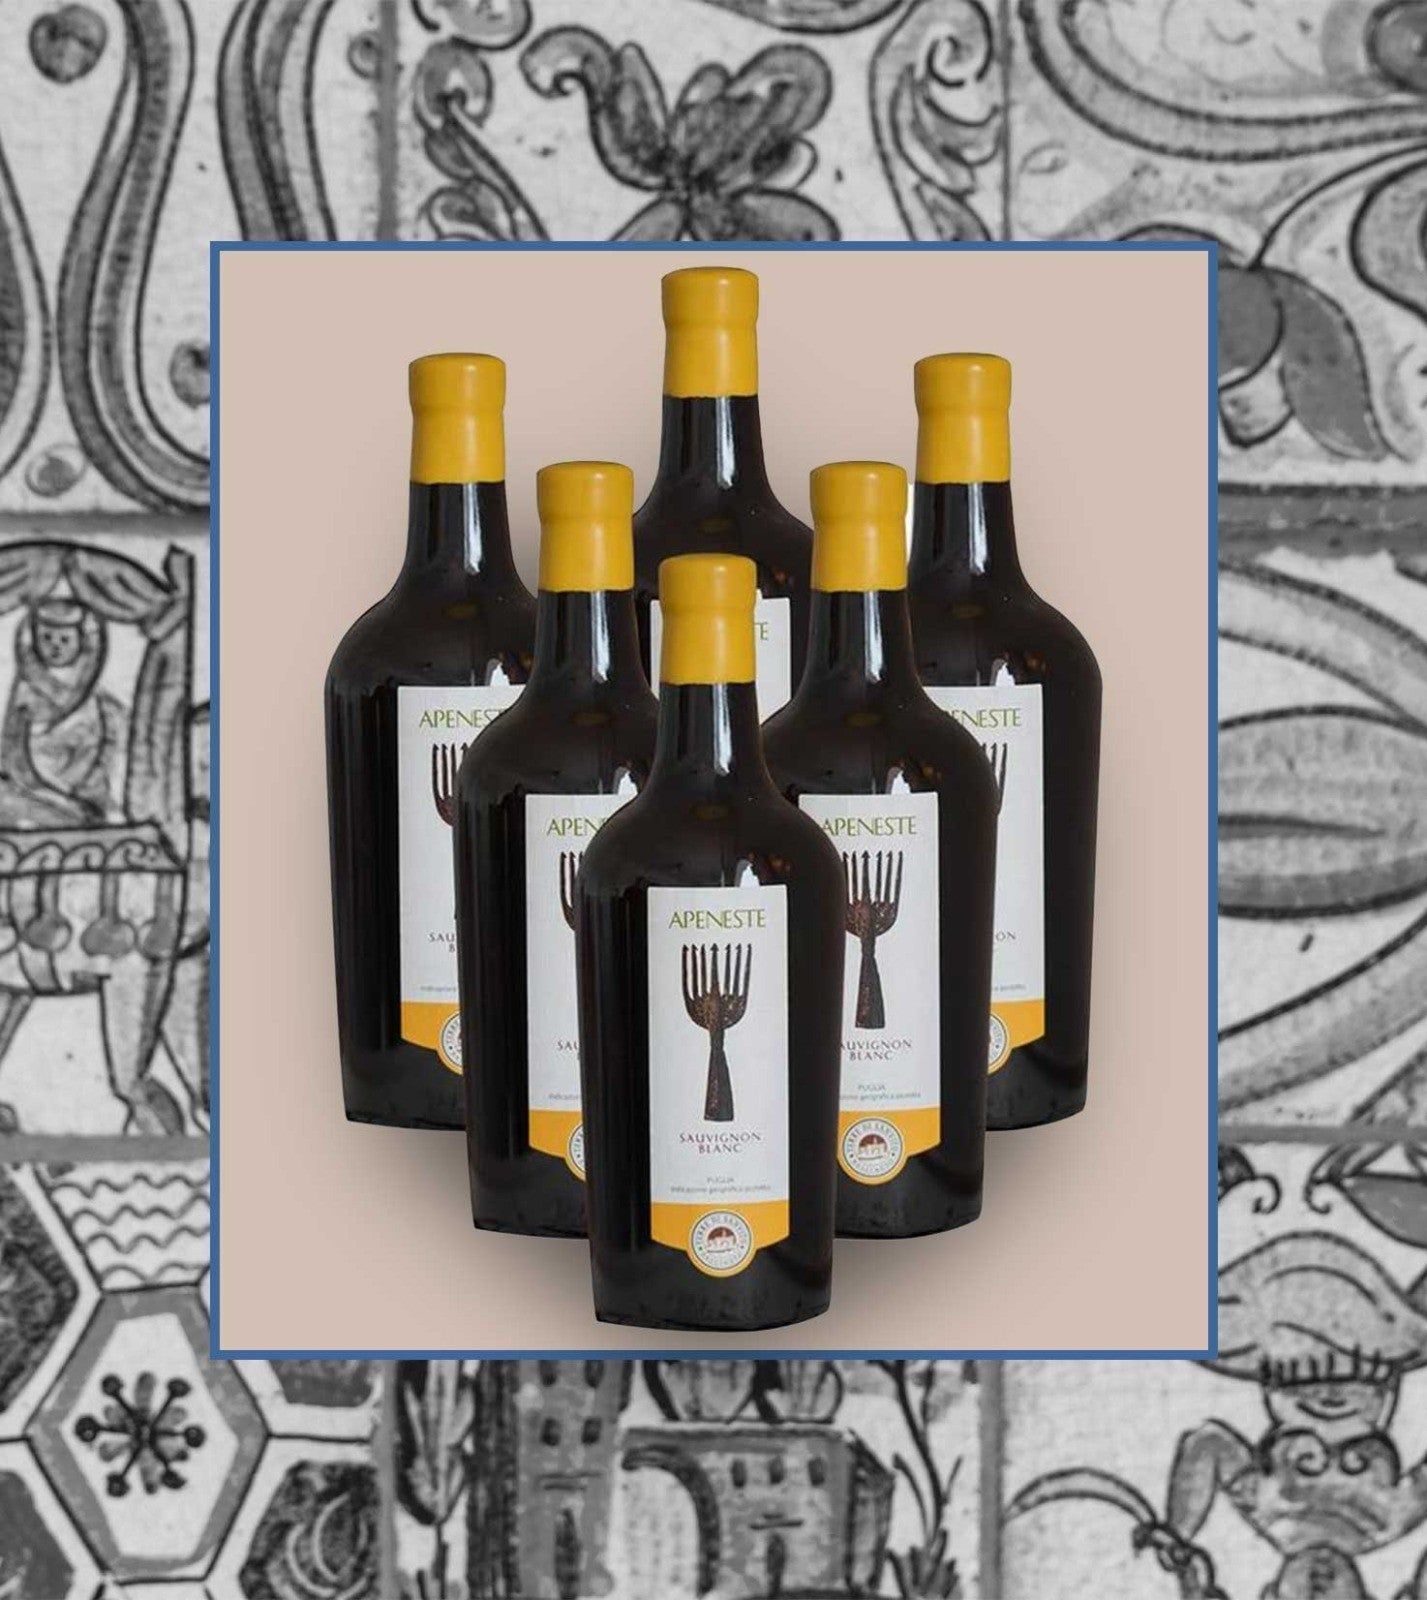 Case of 6 bottles of Apeneste